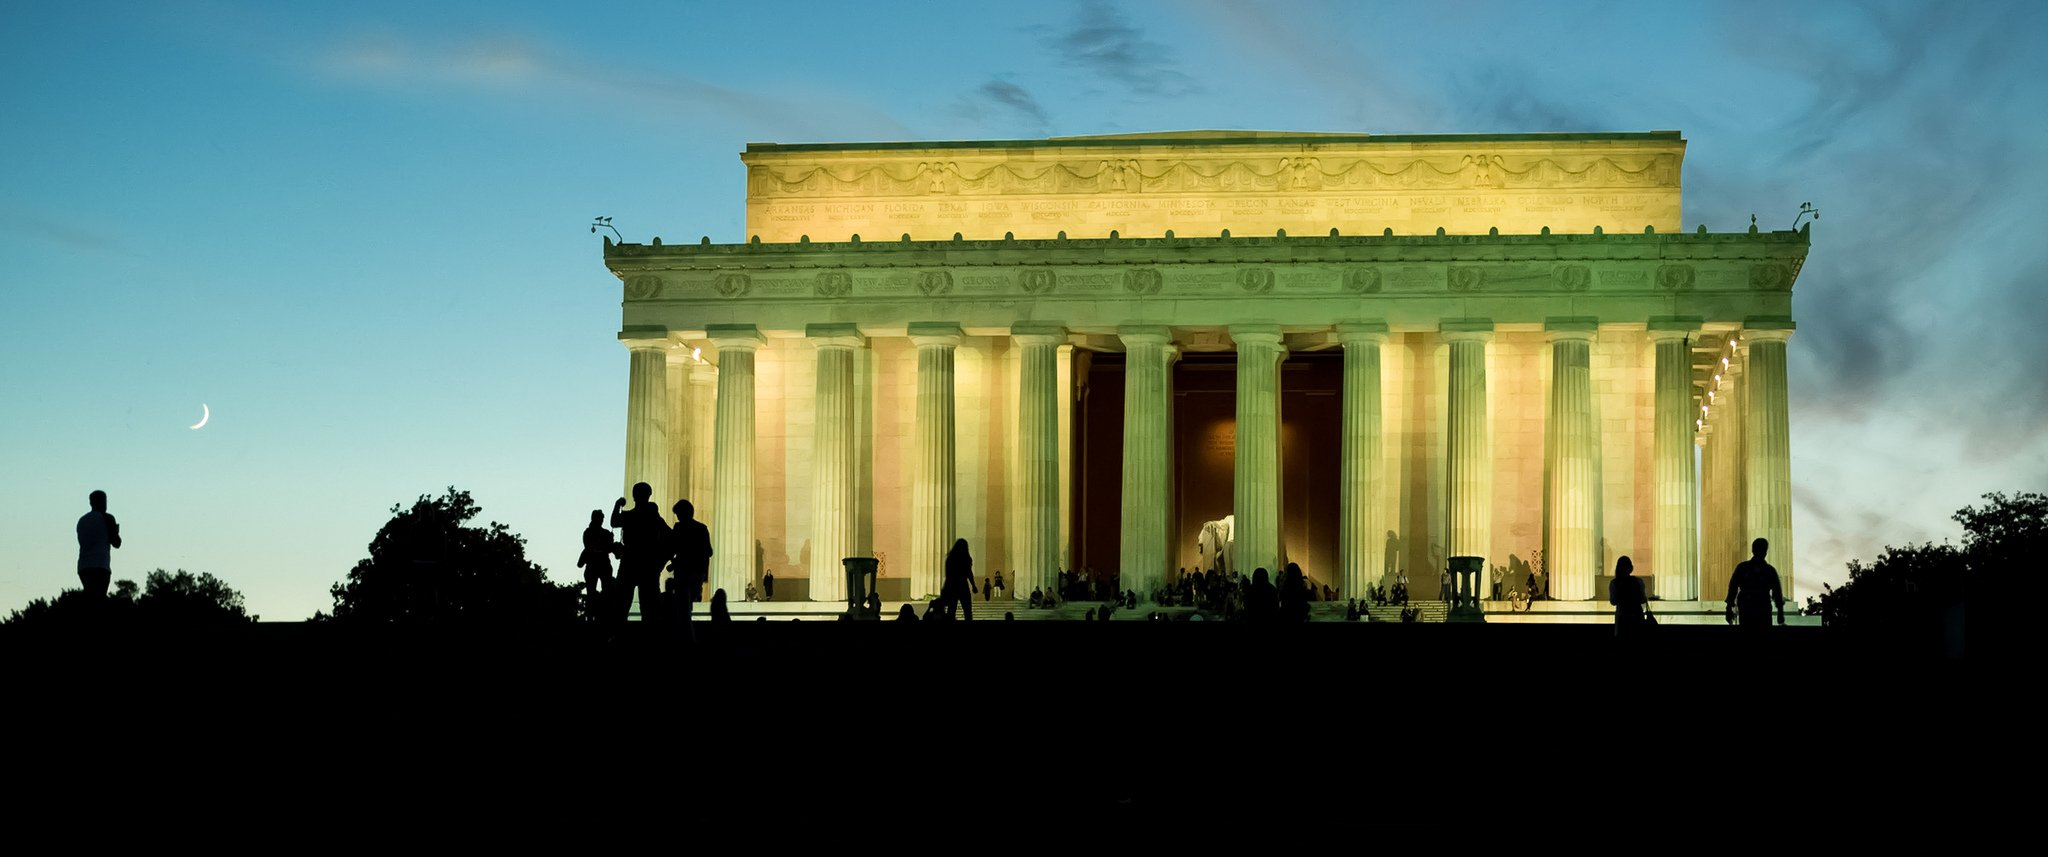 5 Surprising Places to Find Solitude in DC